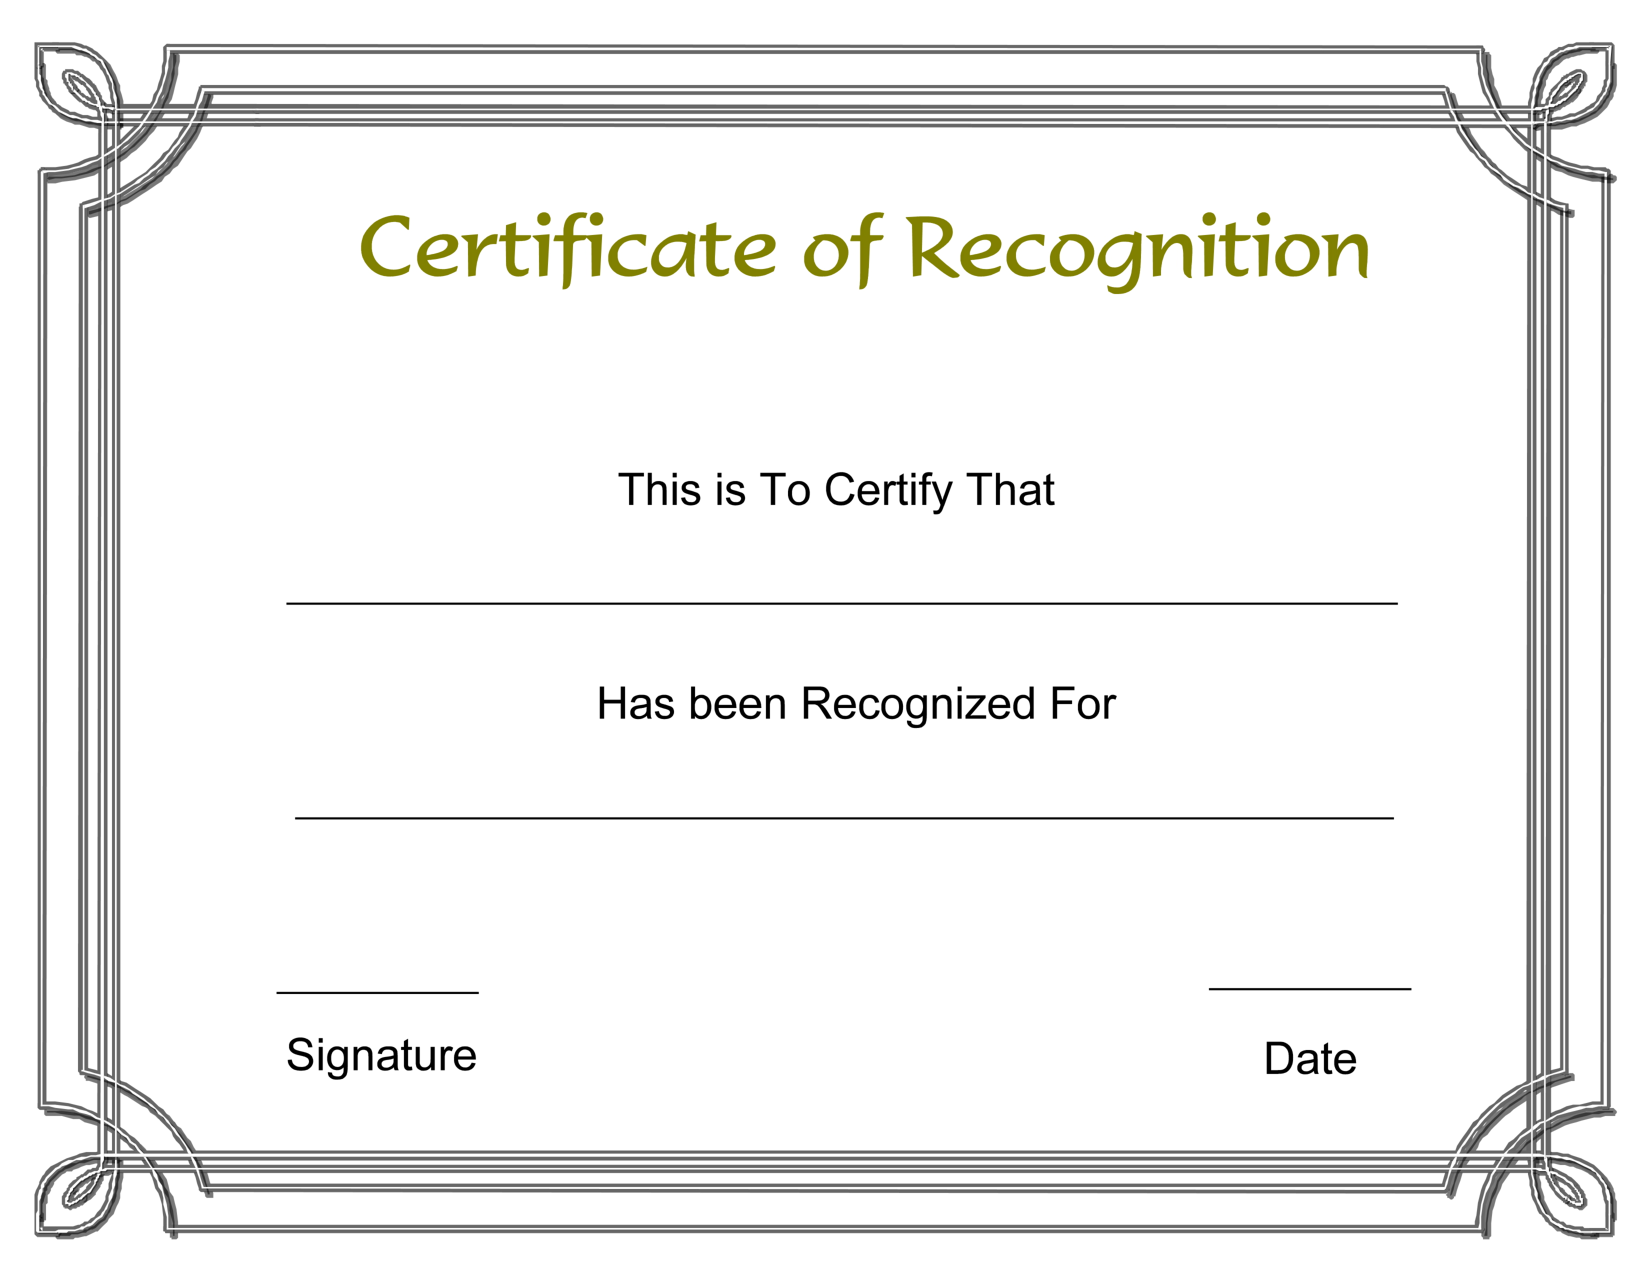 Template free award certificate templates and employee recognition template free award certificate templates and employee recognition printable appreciation 1betcityfo Image collections